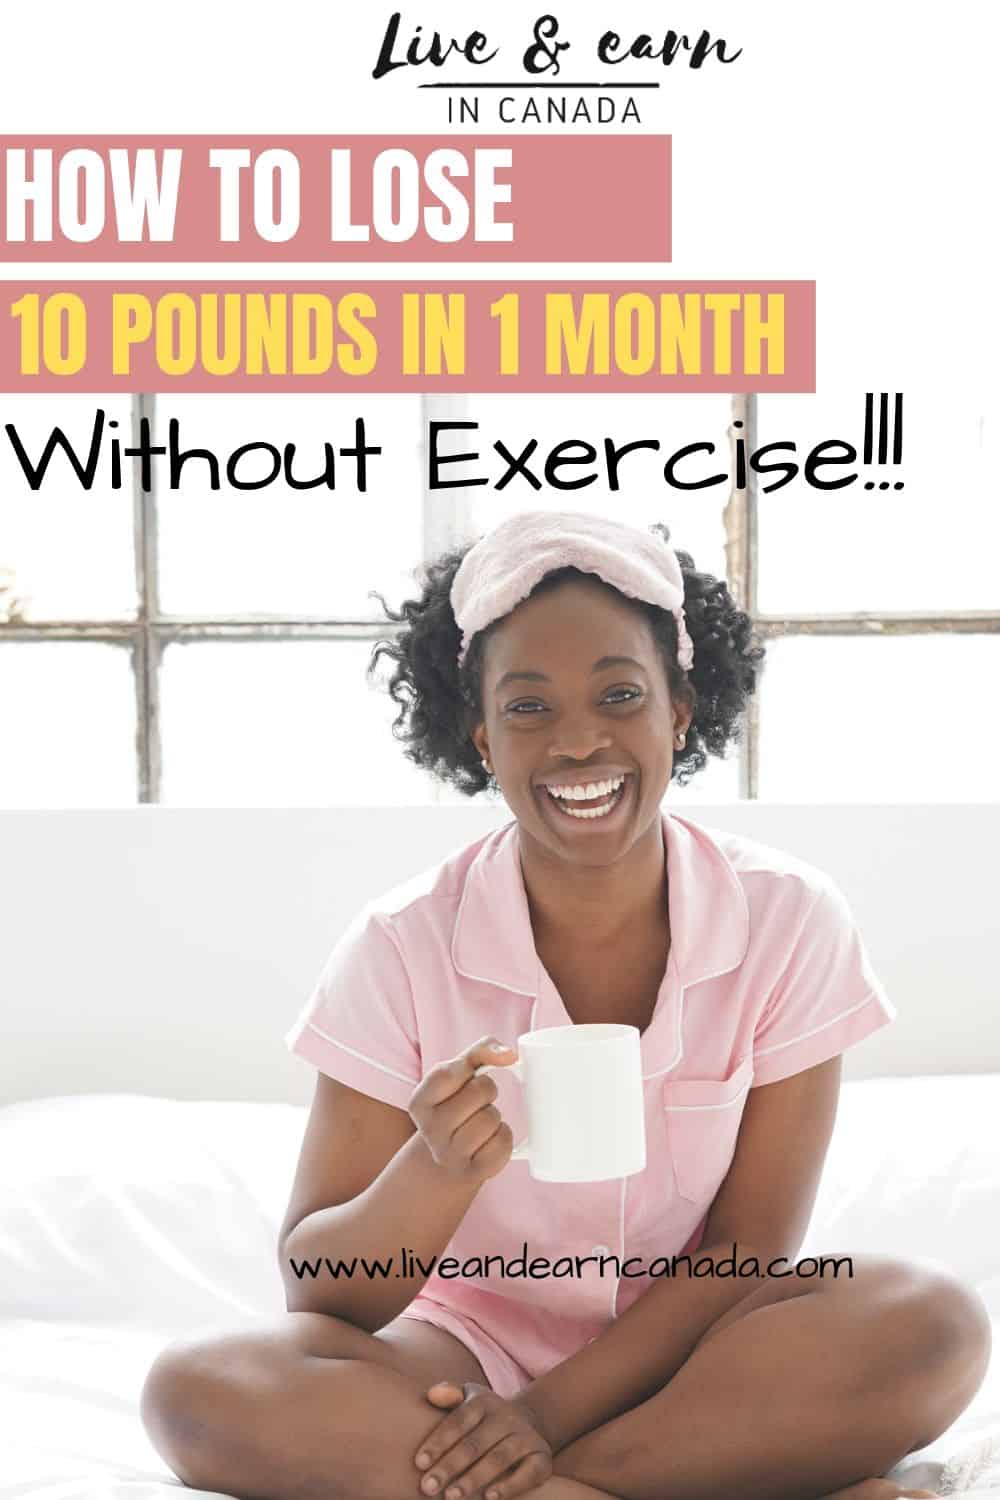 how to lose 10 pounds in a month without exercise. Here is how to lose 10 pounds in a month without exercise #10pounds